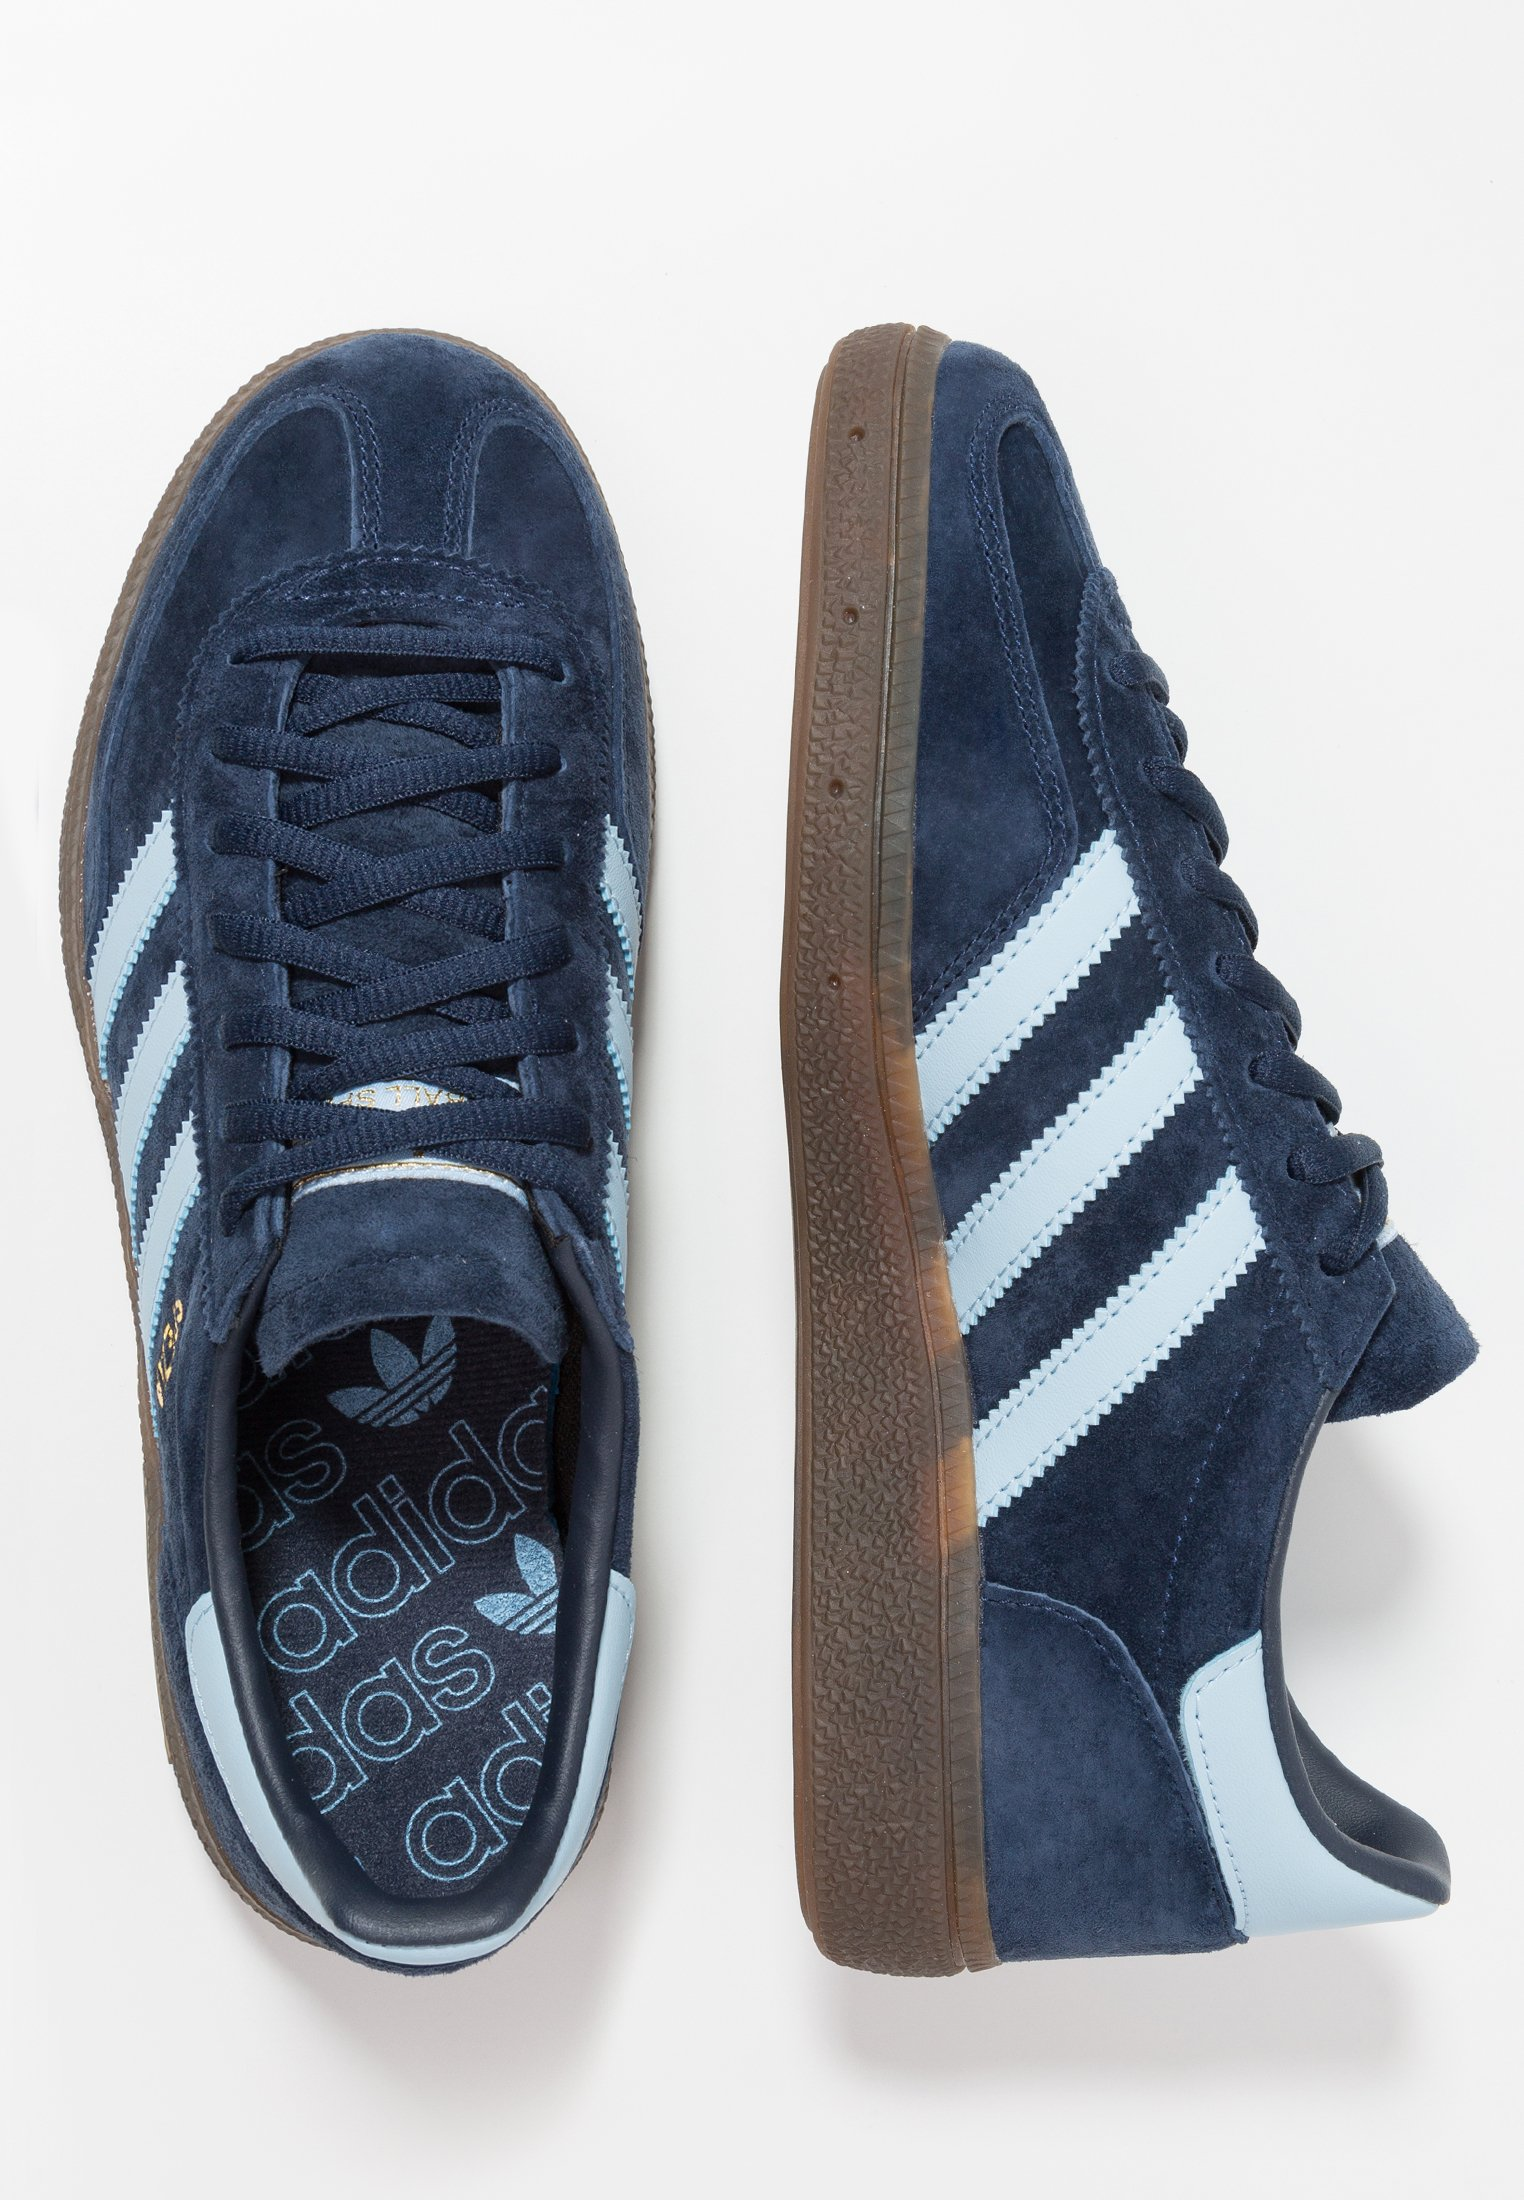 Adidas Originals Handball Spezial Streetwear-style Shoes - Joggesko Collegiate Navy/clear Sky